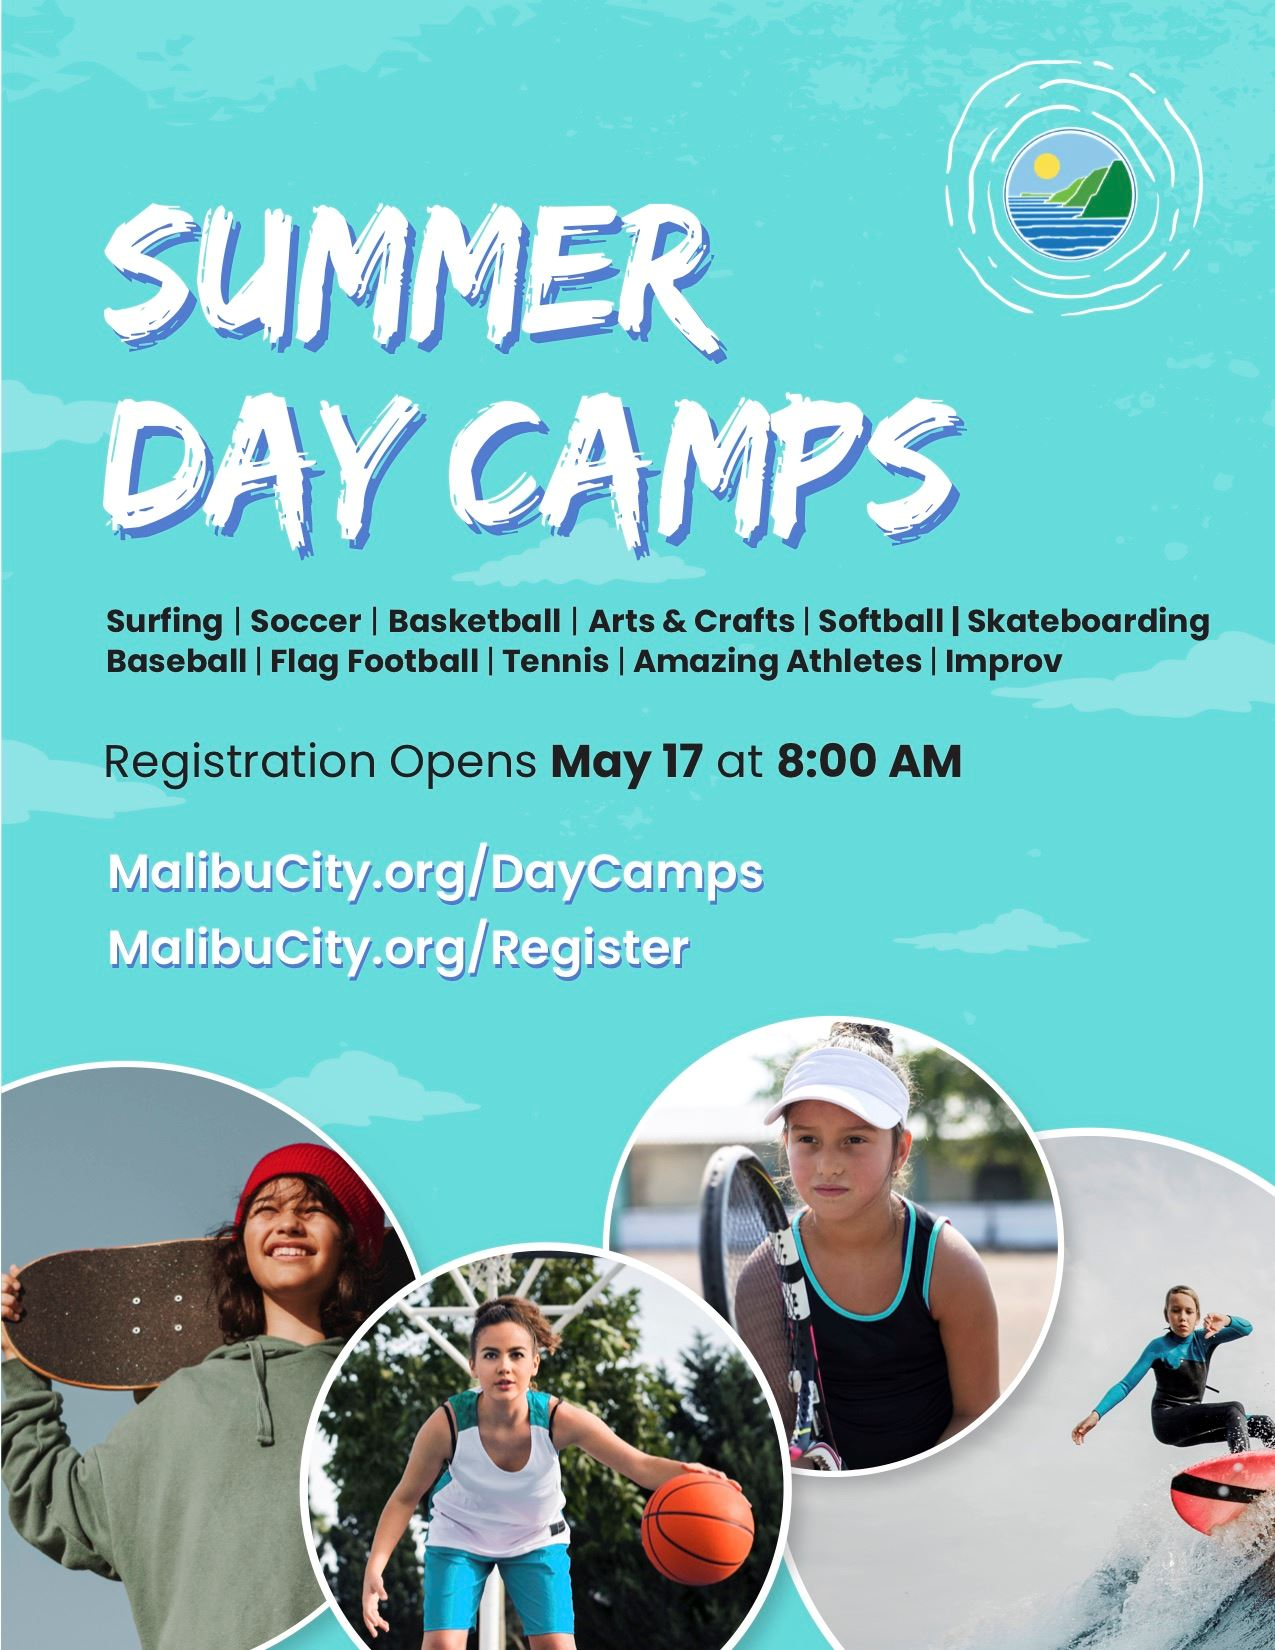 Summer day camps flyer